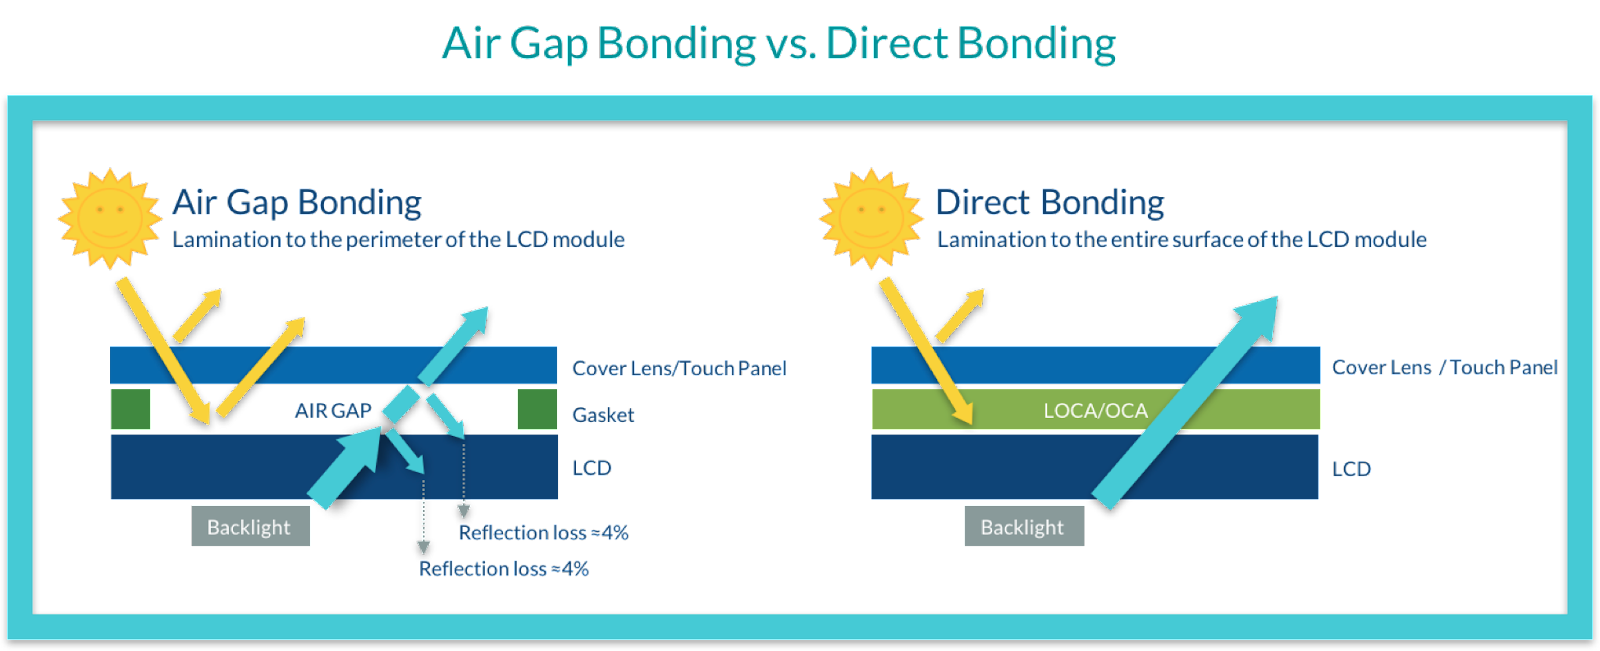 High Bond Tape Is Applied Only On The Borders See Illustration Between Display And Touch Screen Creating A Gasket Thus An Air Gap